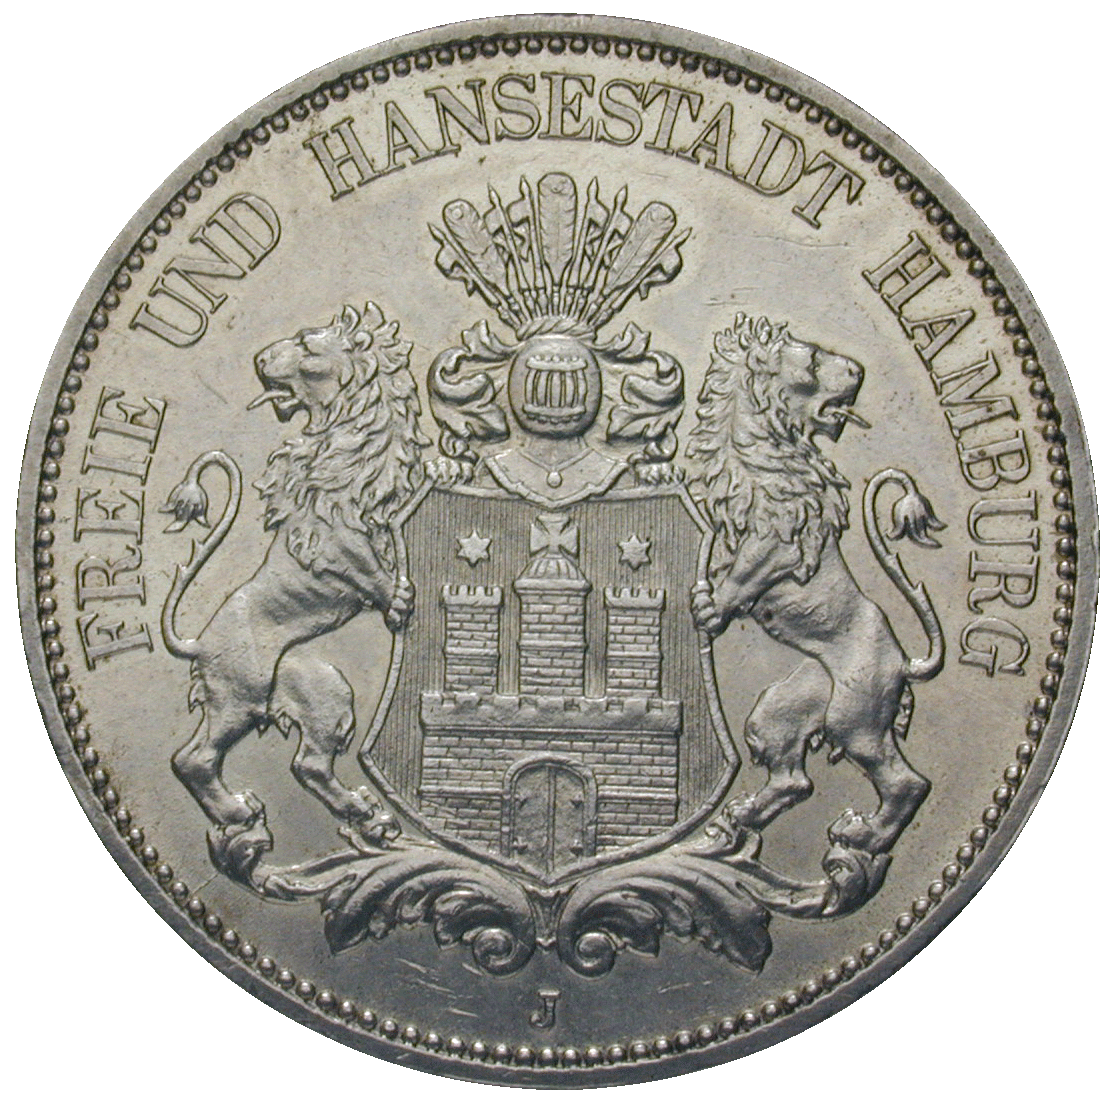 German Empire, Wilhelm II, Free Hanseatic City of Hamburg, 5 Mark 1913 (obverse)